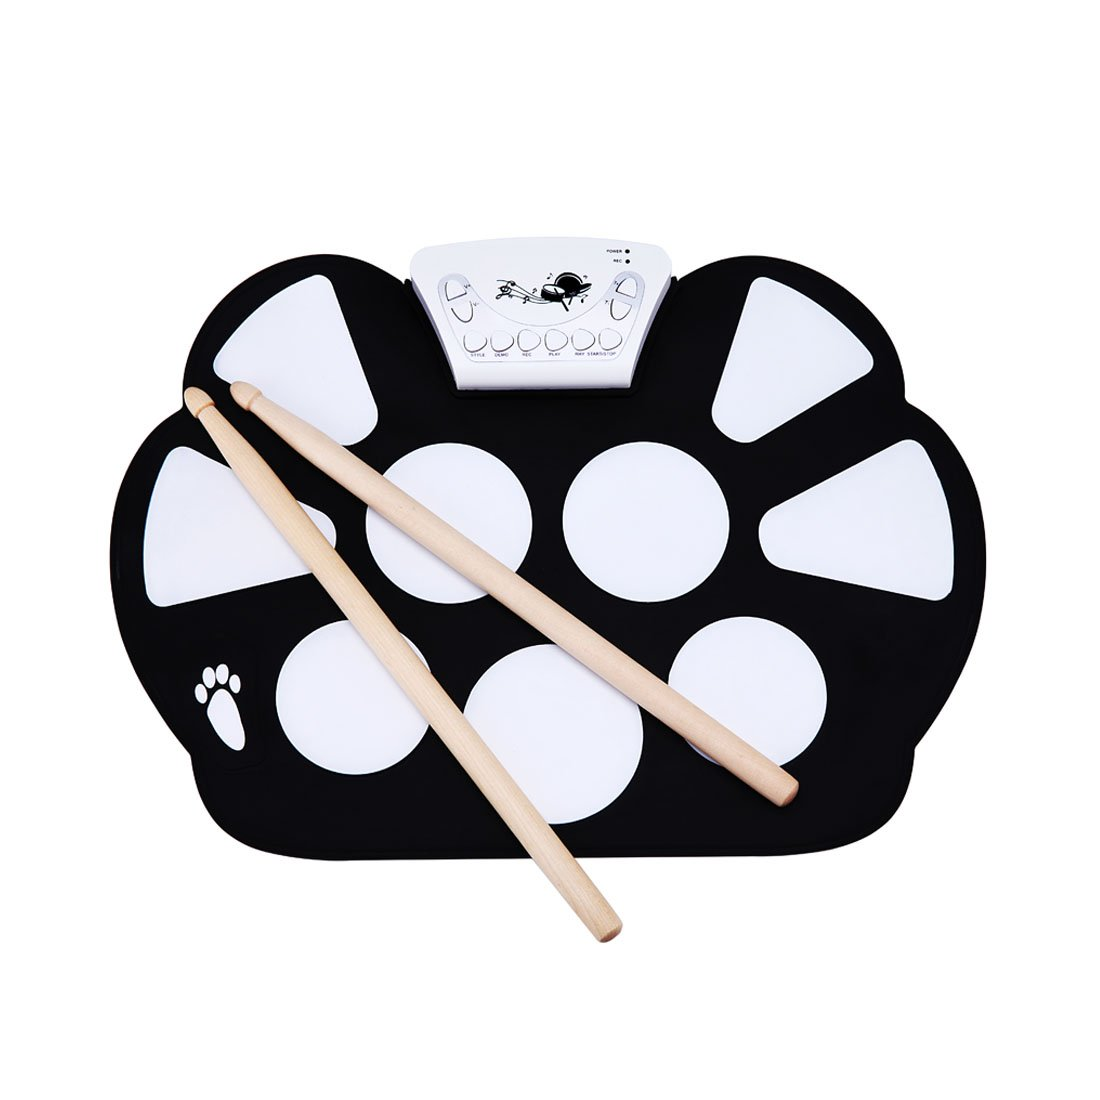 Roll Up Drum Kit 9 Pad Record Function Midi In/Out Headphone MP3 Jack Foot Pedals Drum Sticks USB Interface EDW758